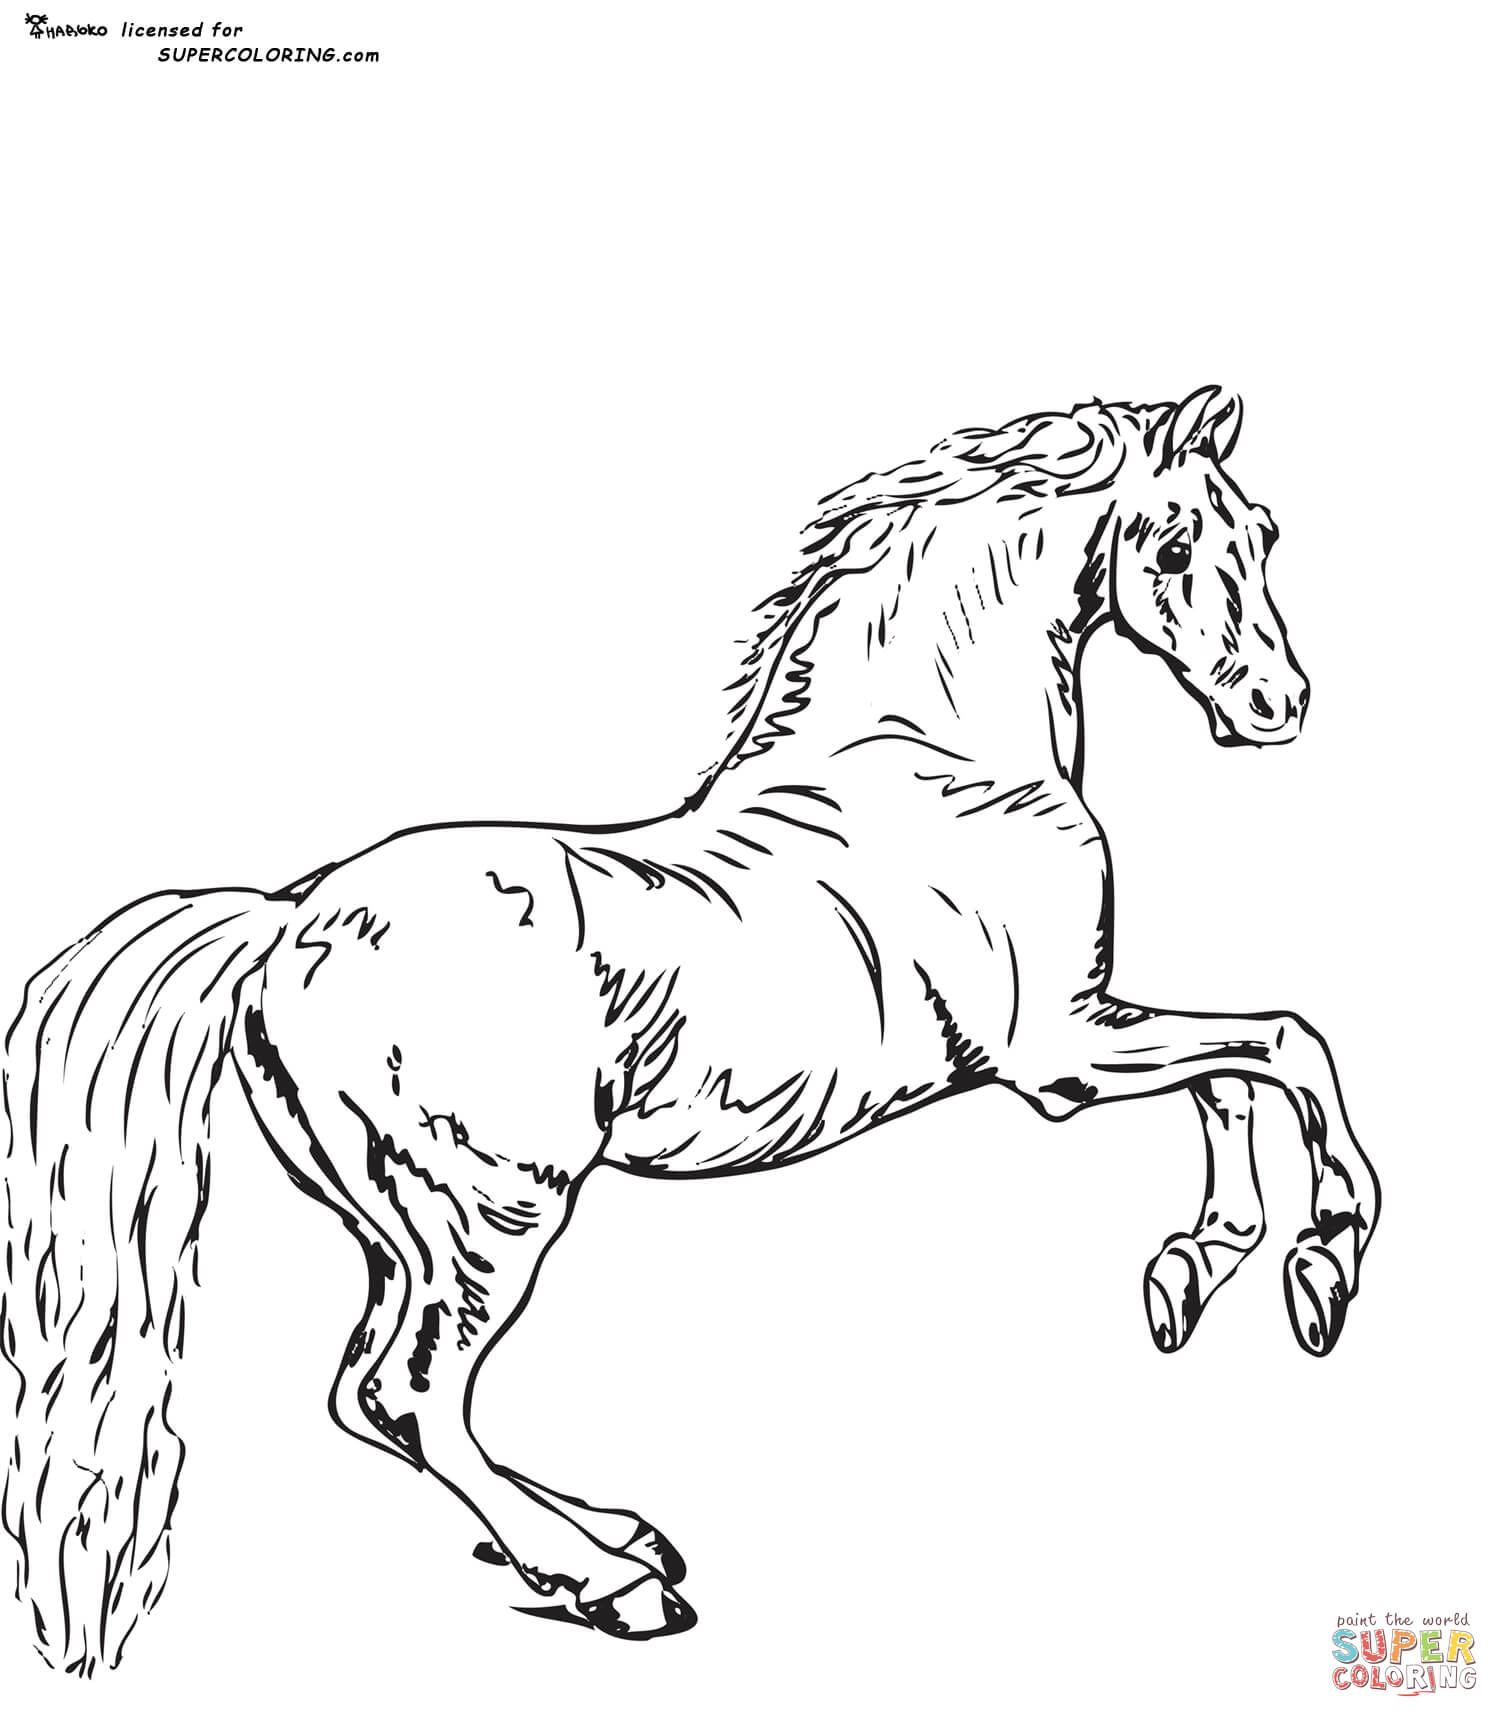 Whistlejacket By George Stubbs coloring page.